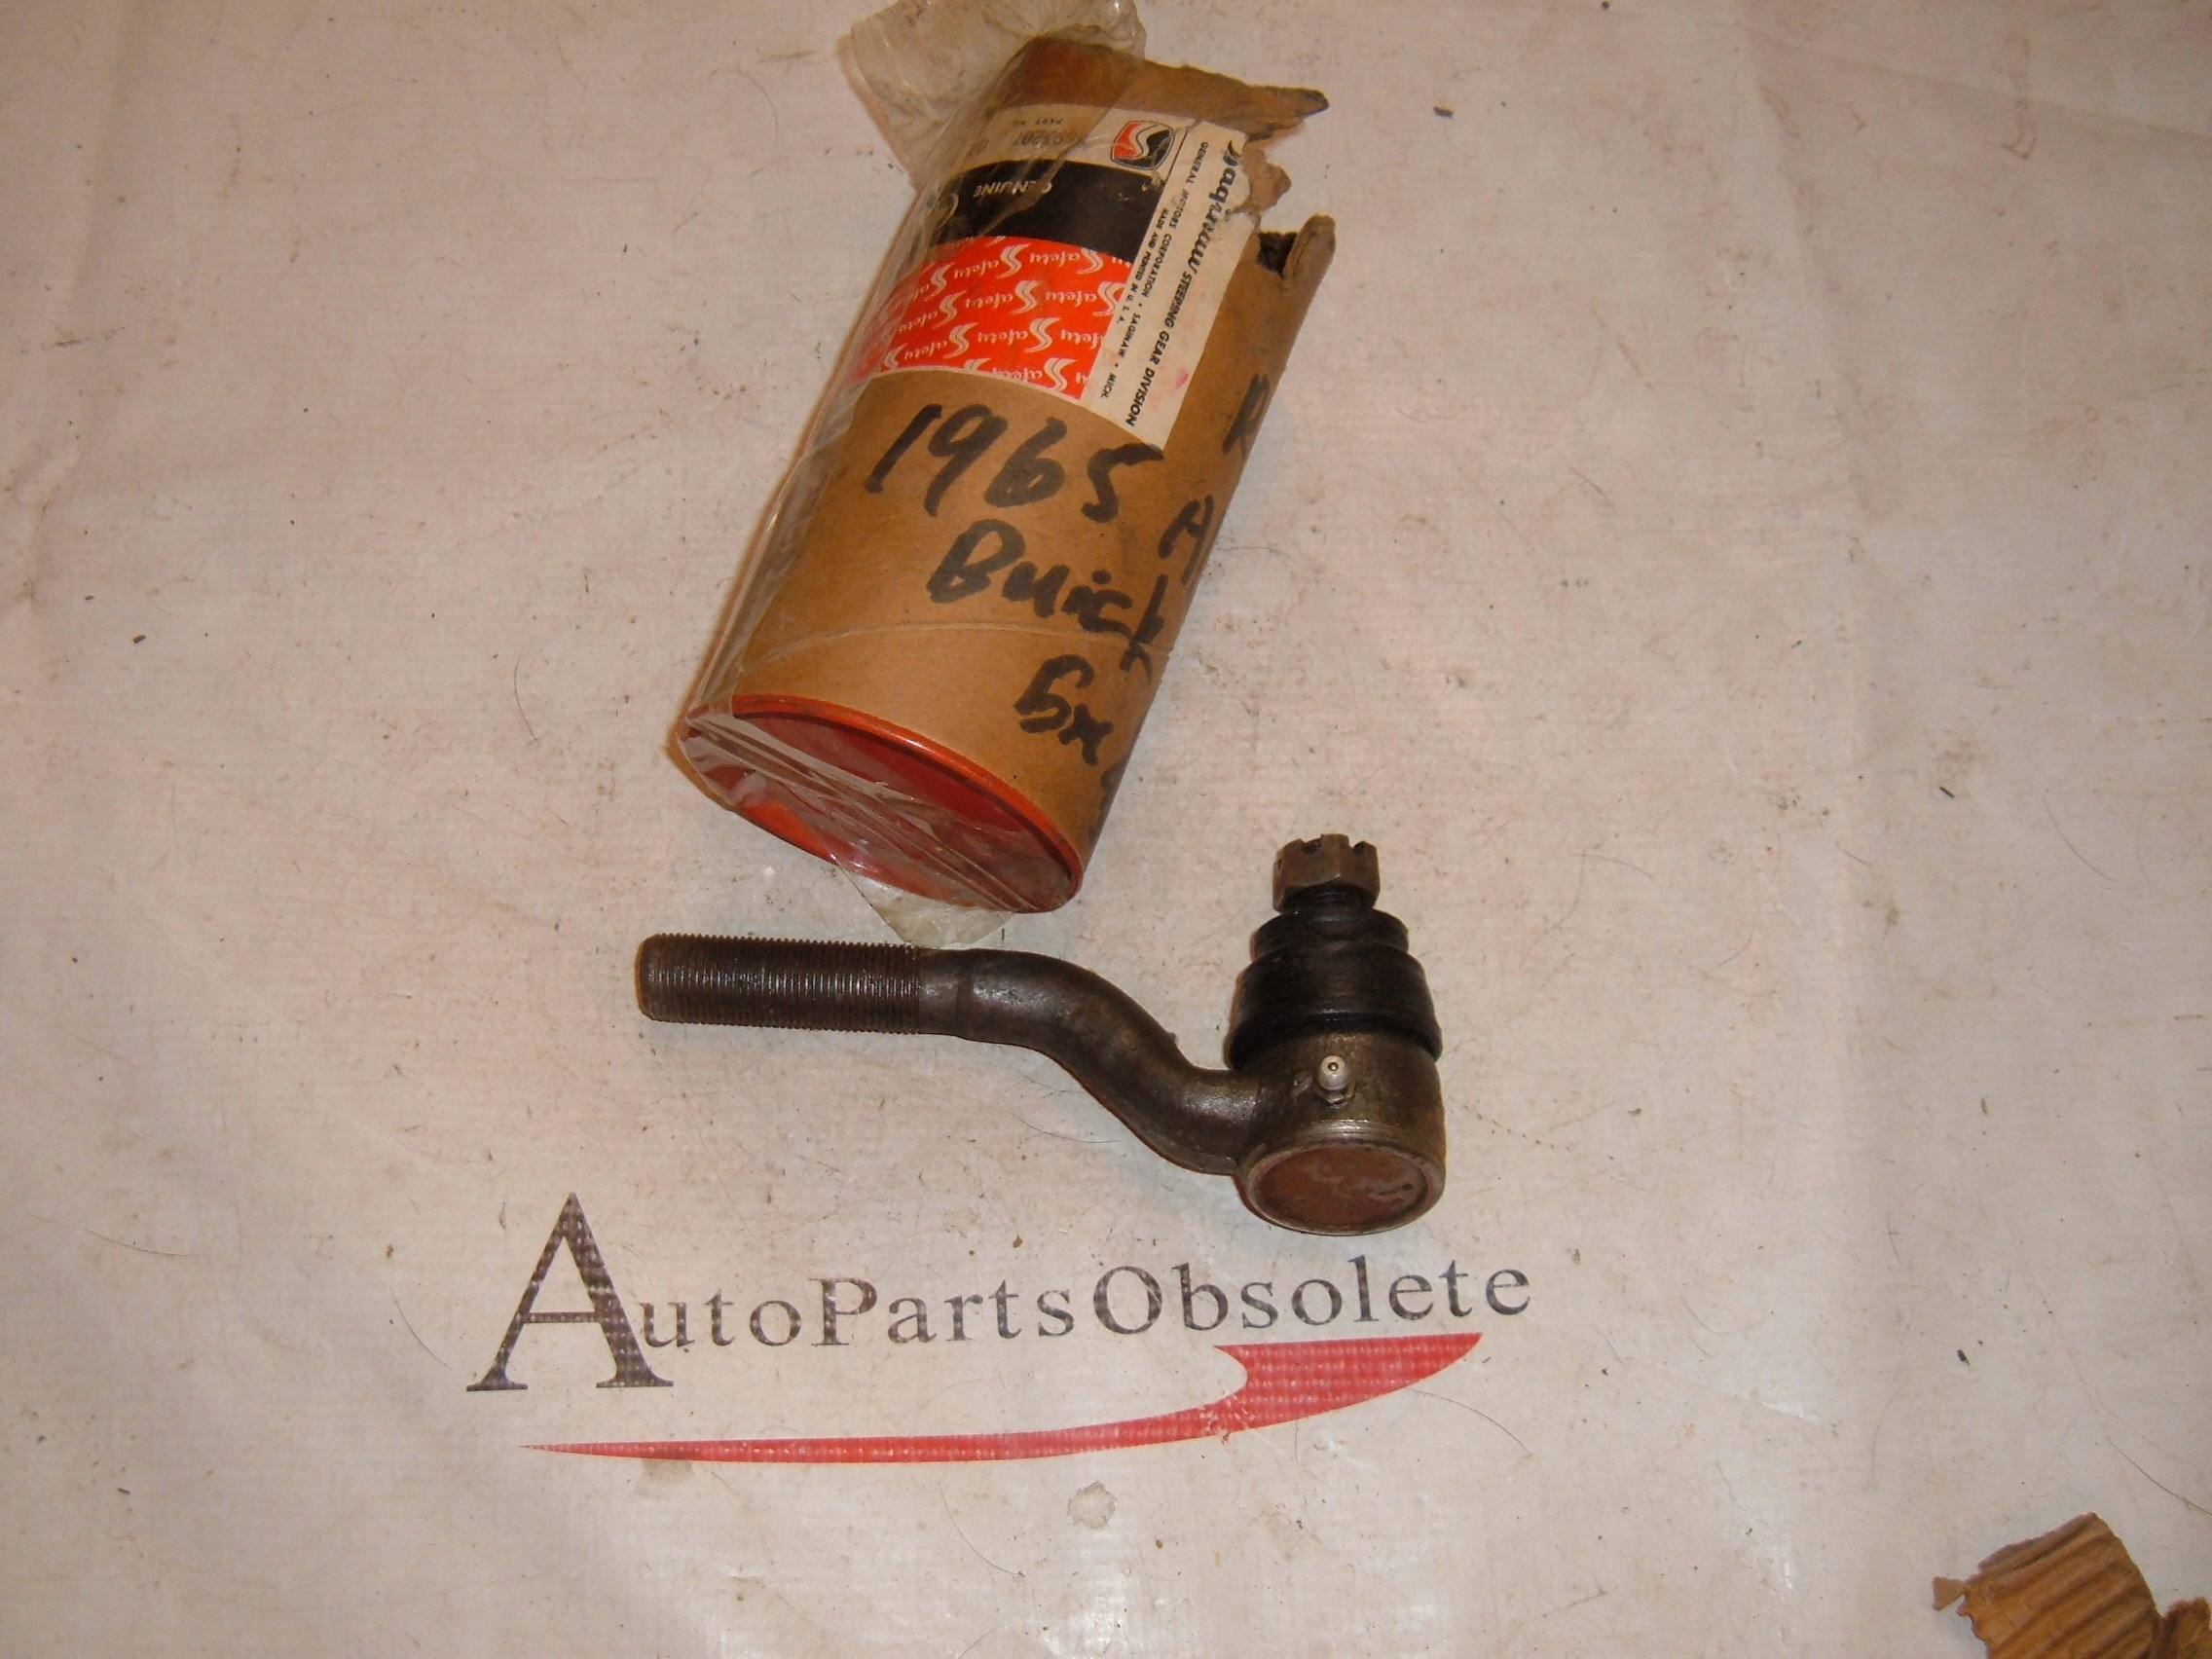 1965 buick tie rod end nos gm # 5693207 (z 5693207)